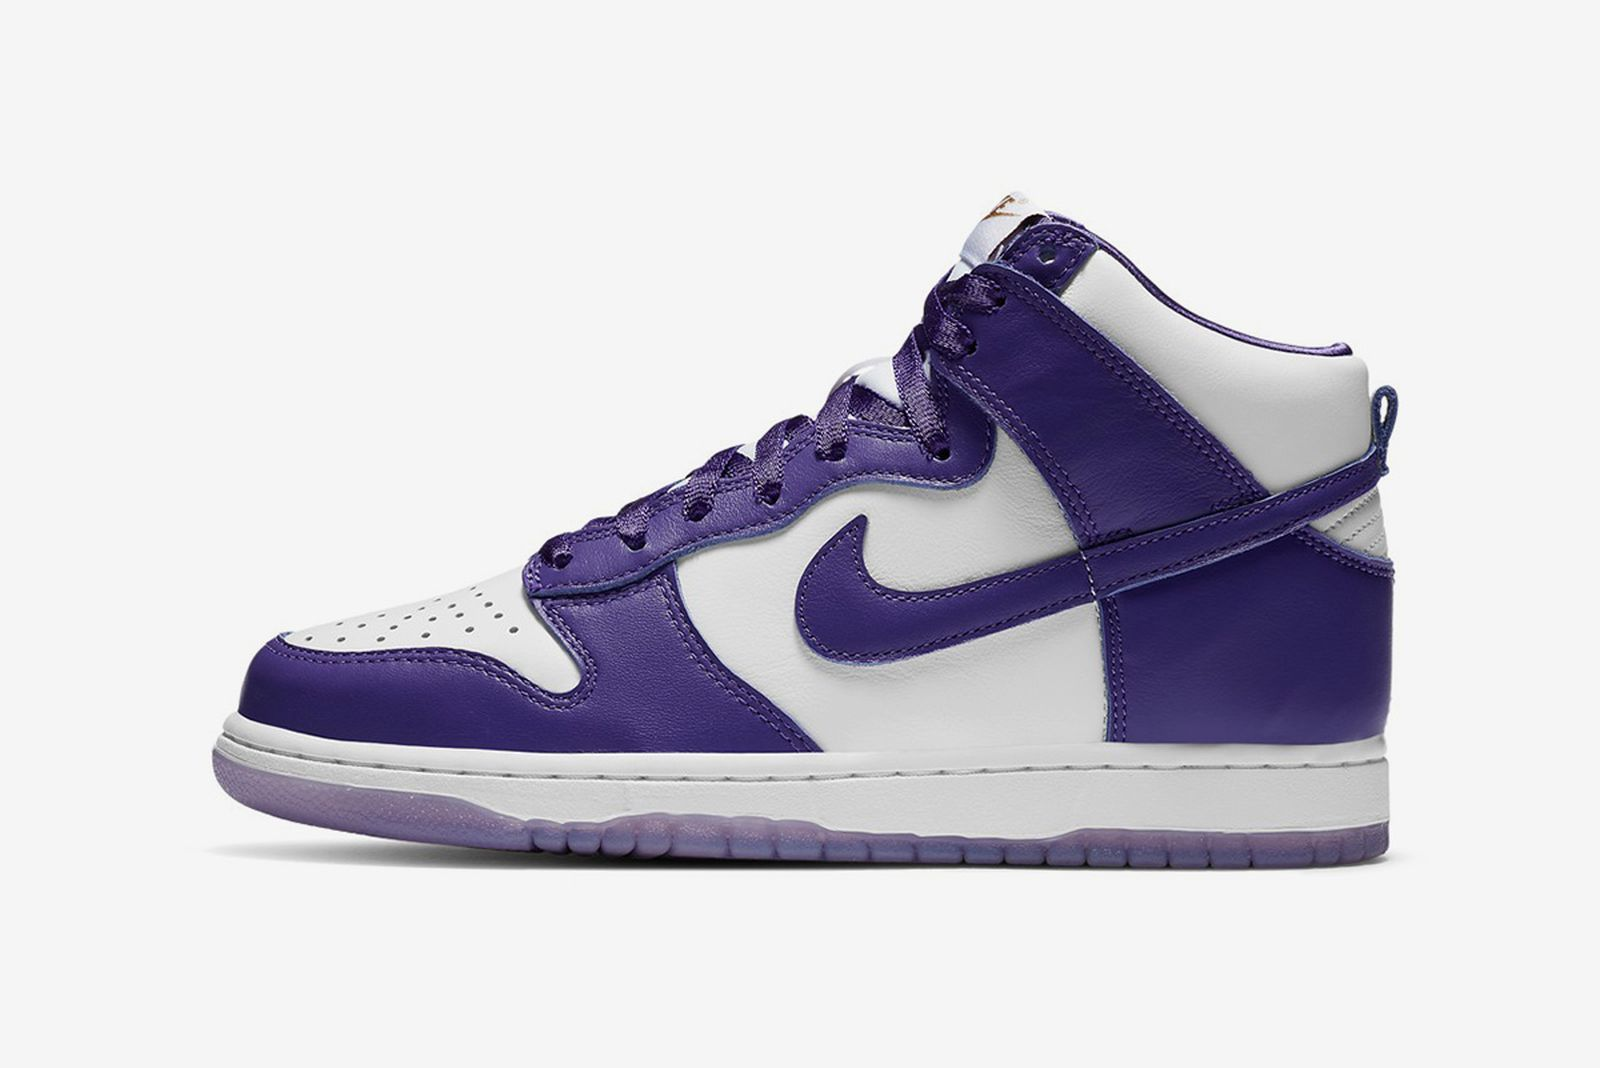 nike-dunk-high-varsity-purple-release-date-price-01